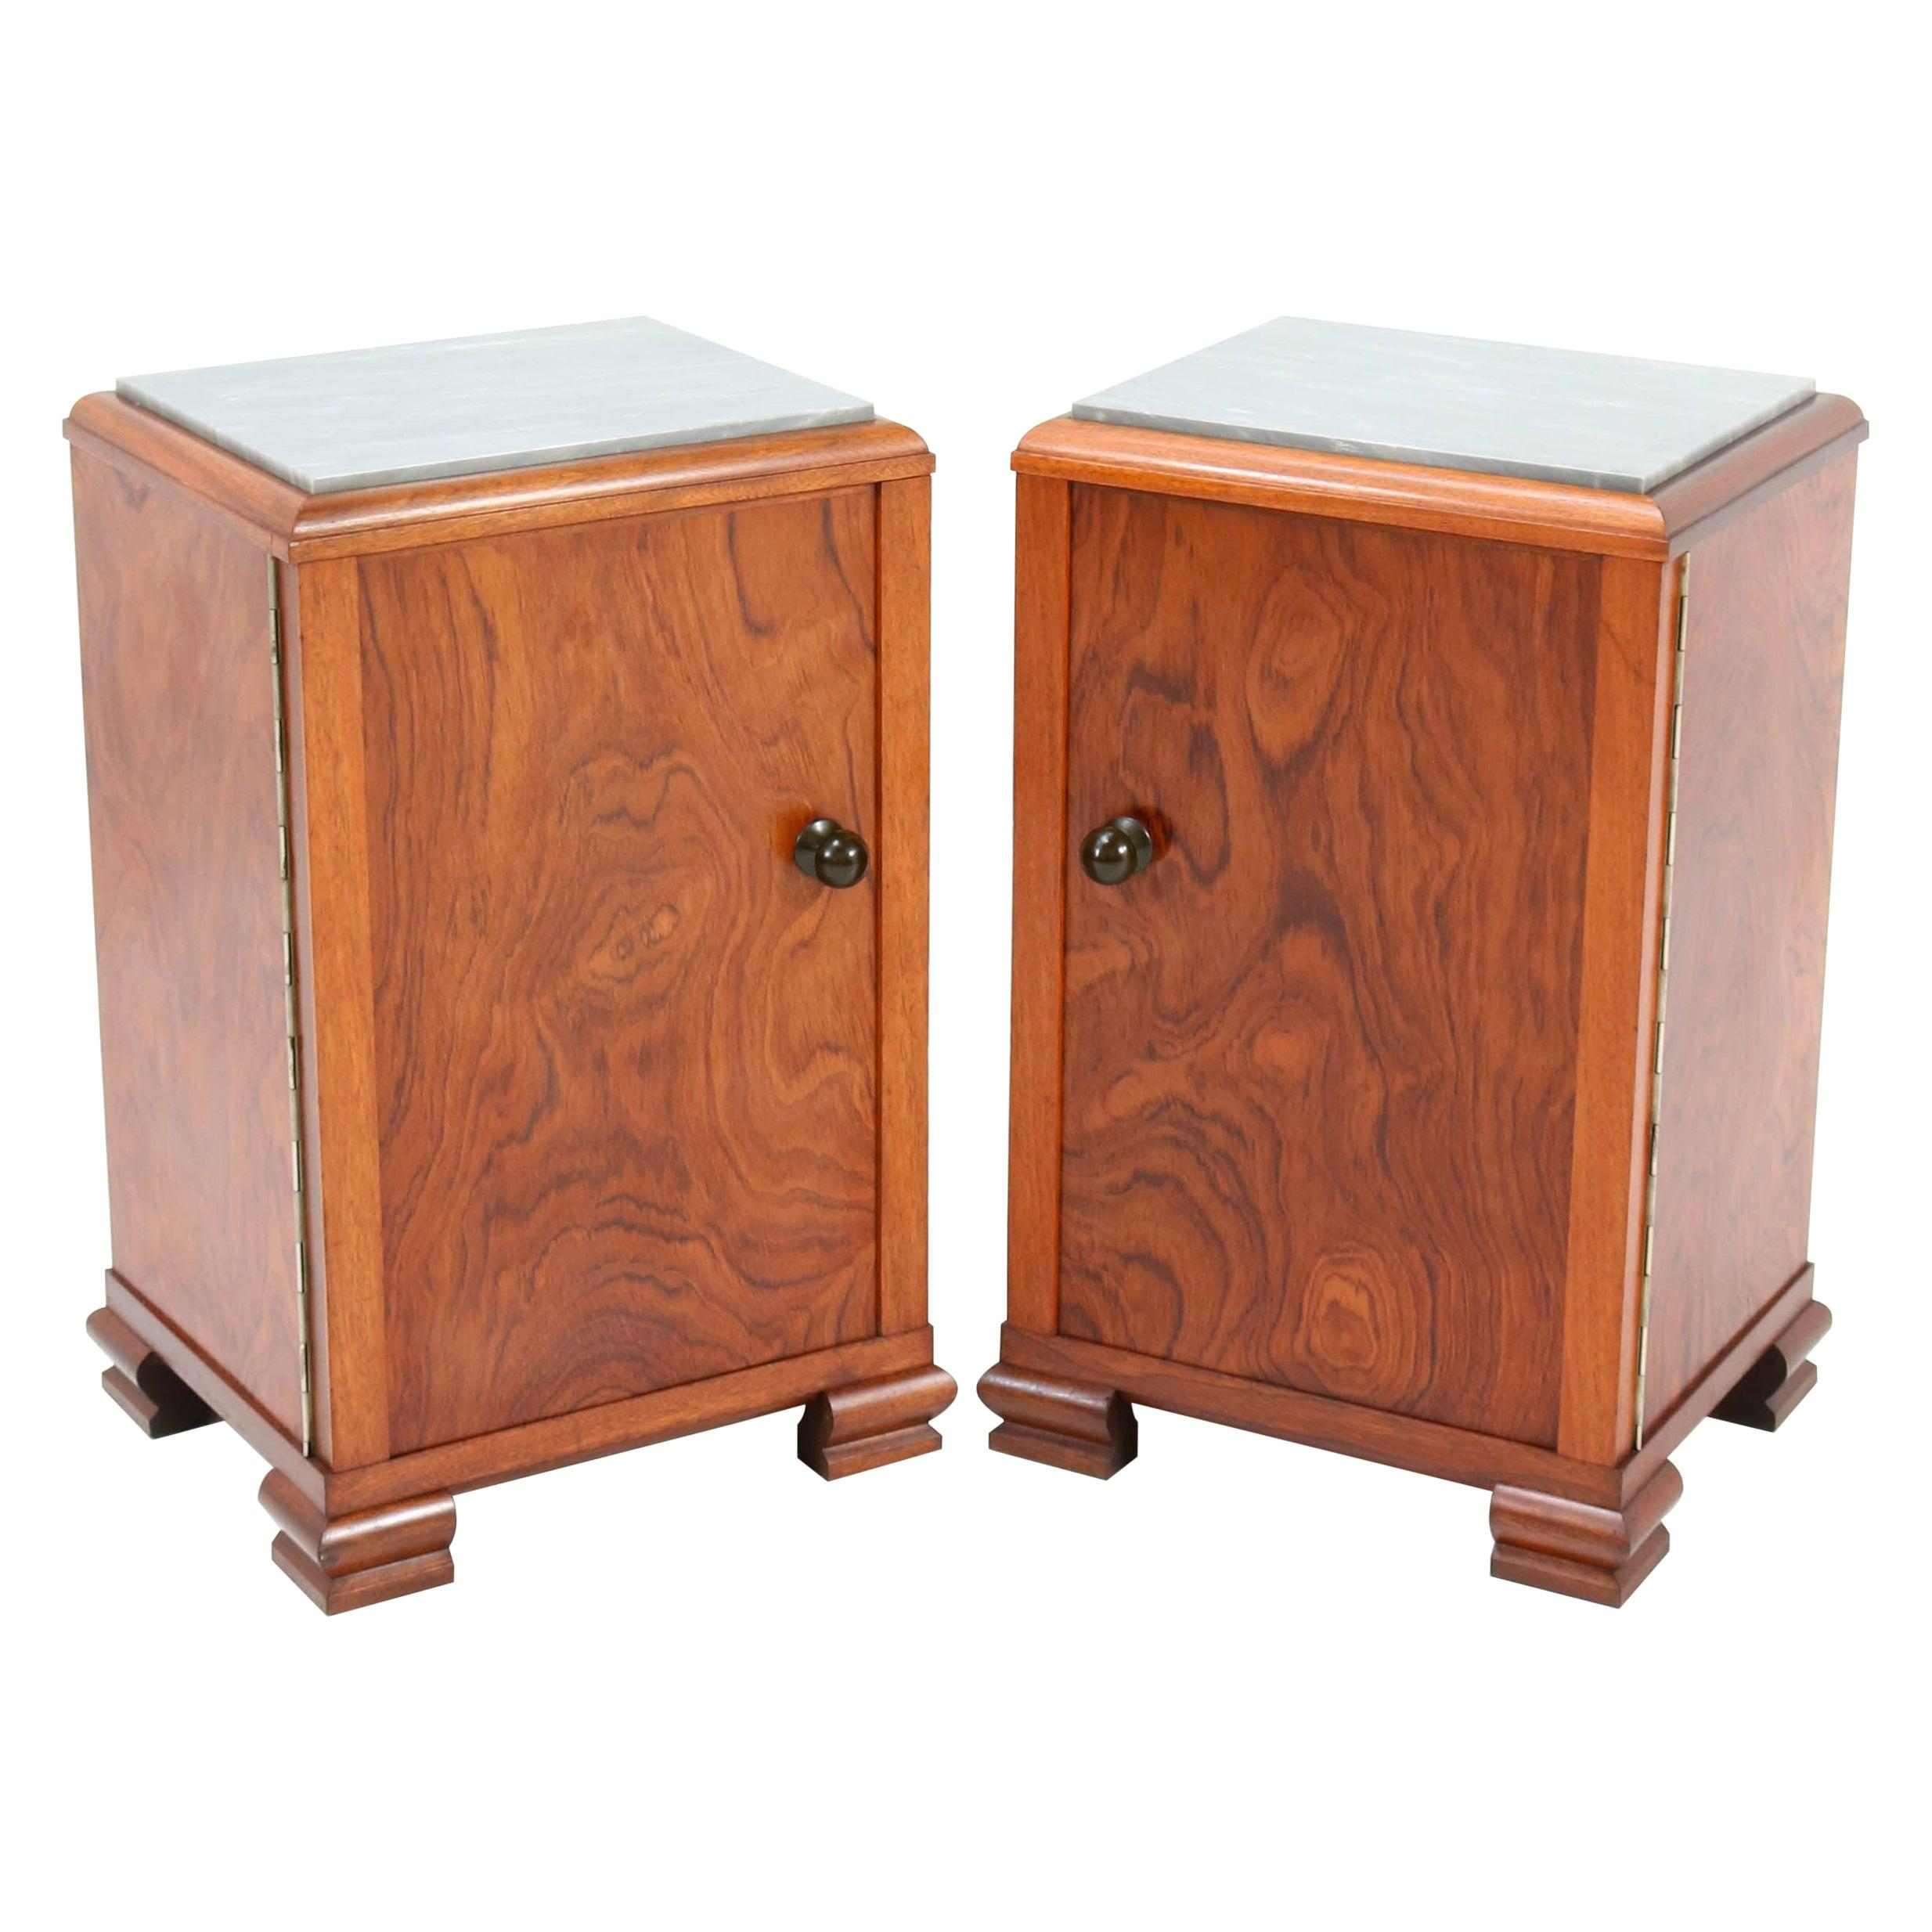 Walnut French Art Deco Nightstands or Bedside Tables, 1930s